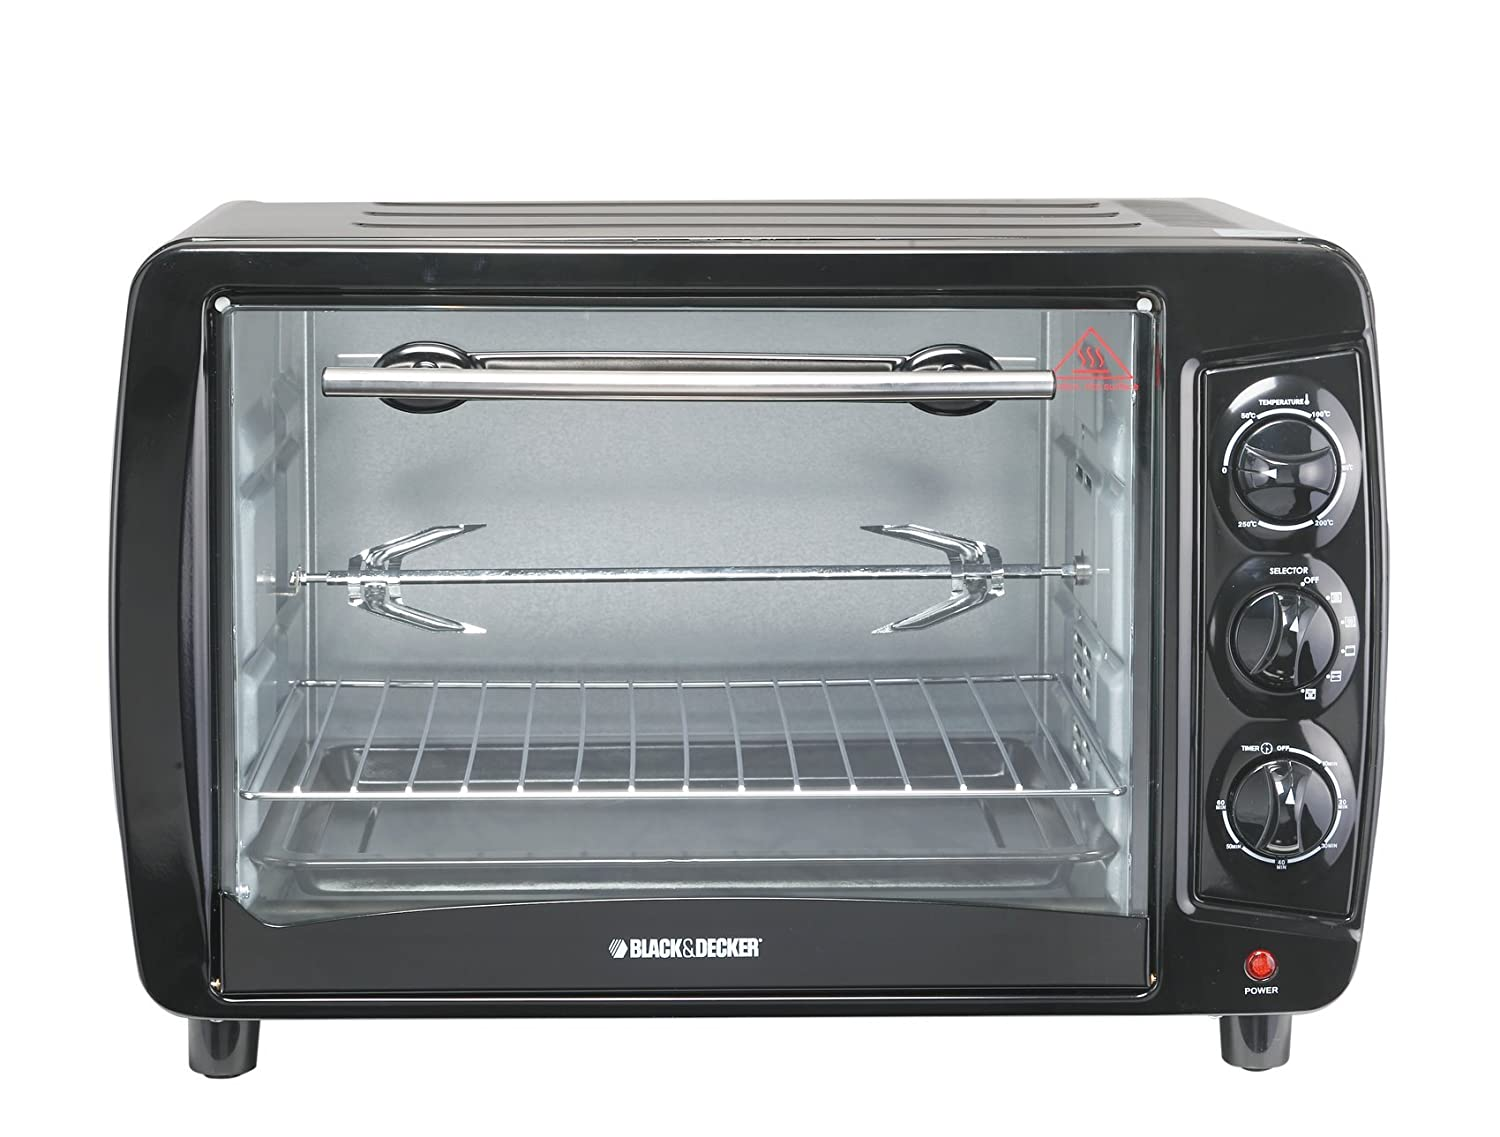 Black and Decker TRO55 35-Liter Toaster Oven, Large